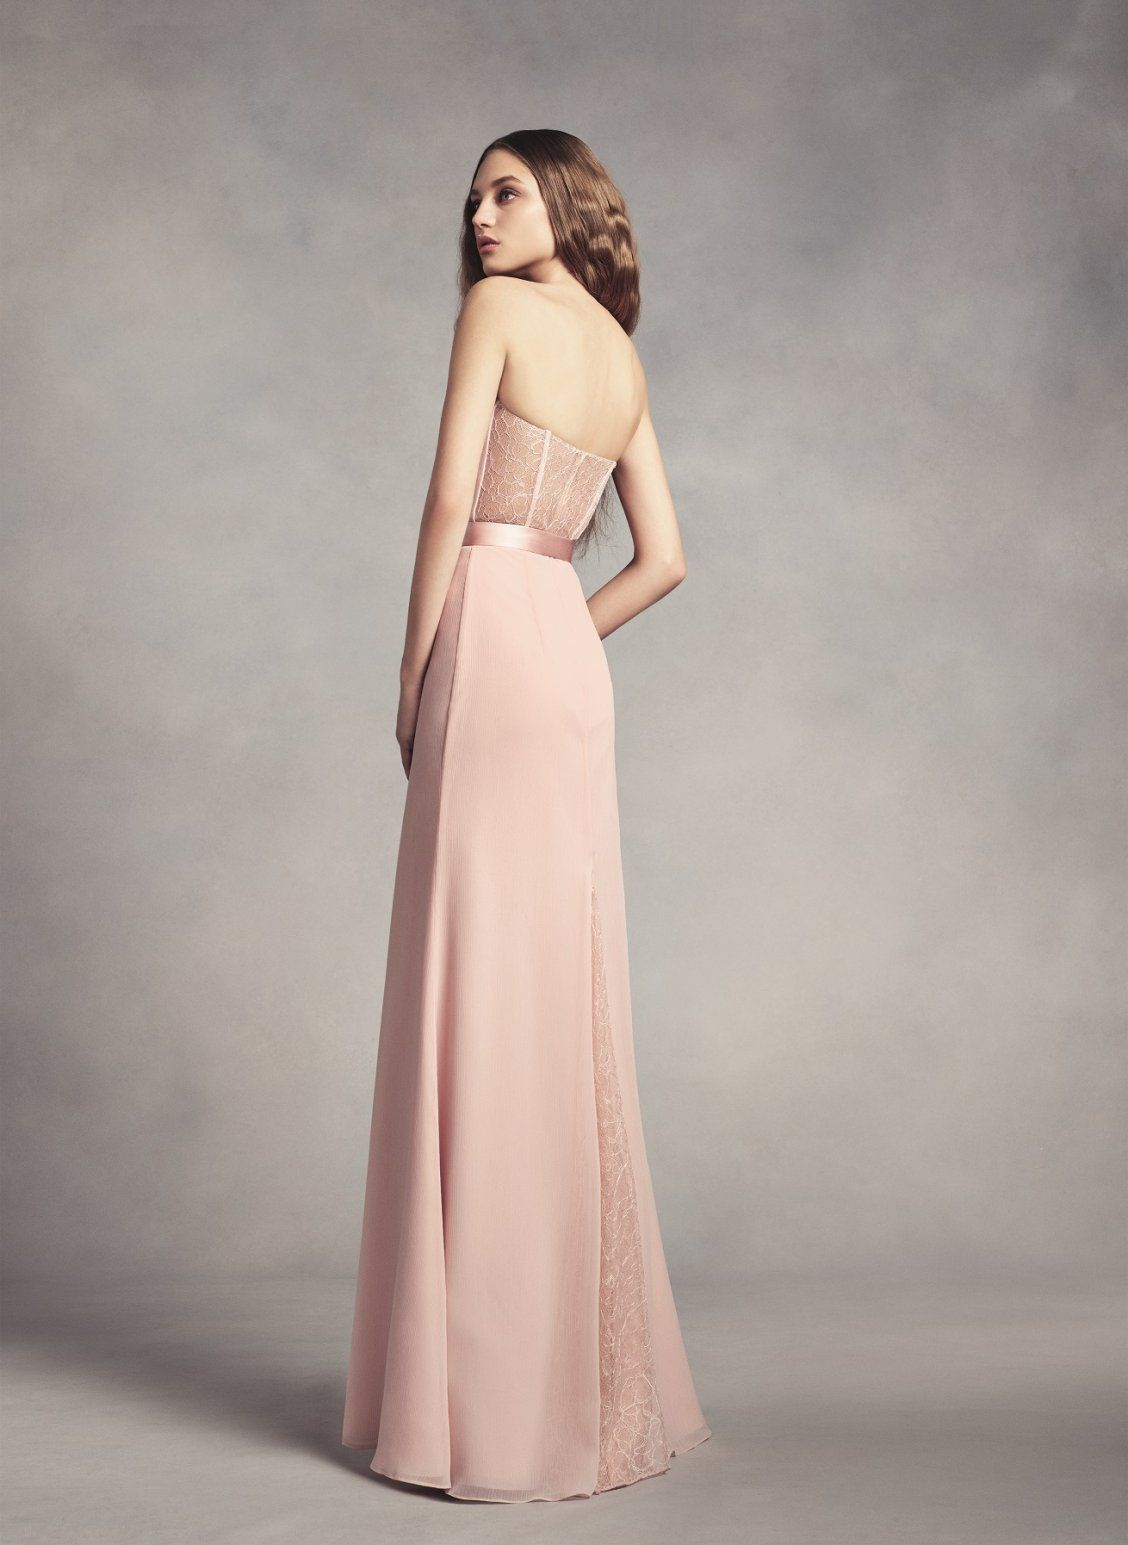 Vera Wang Bridesmaid Dress